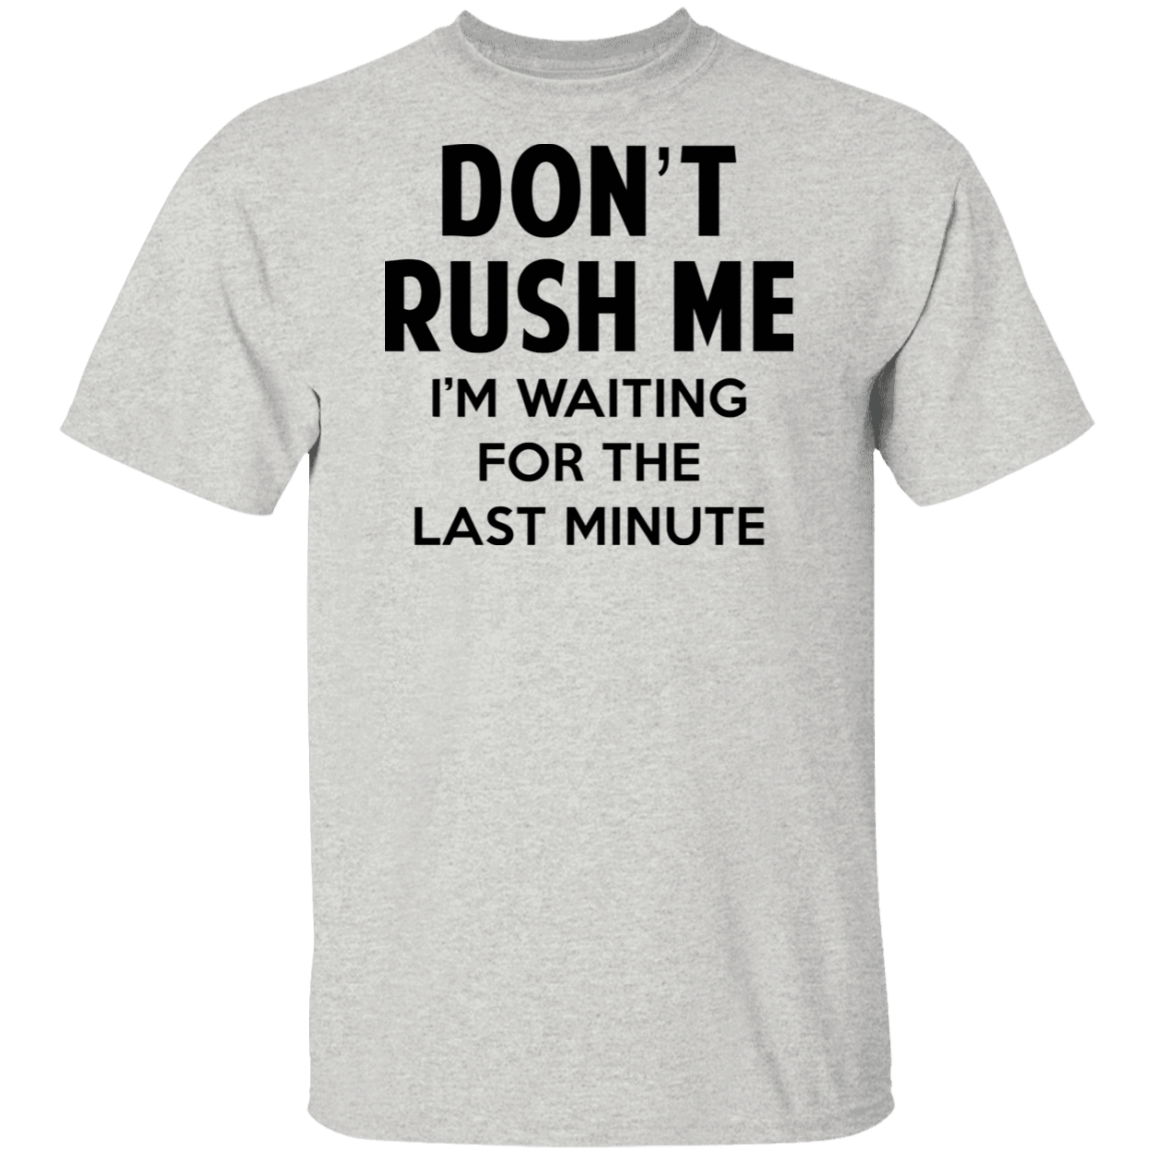 Don't Rush Me I'm Waiting For The Last Minute T-Shirts, Hoodies, Tank 1049-9952-80563636-48184 - Tee Ript